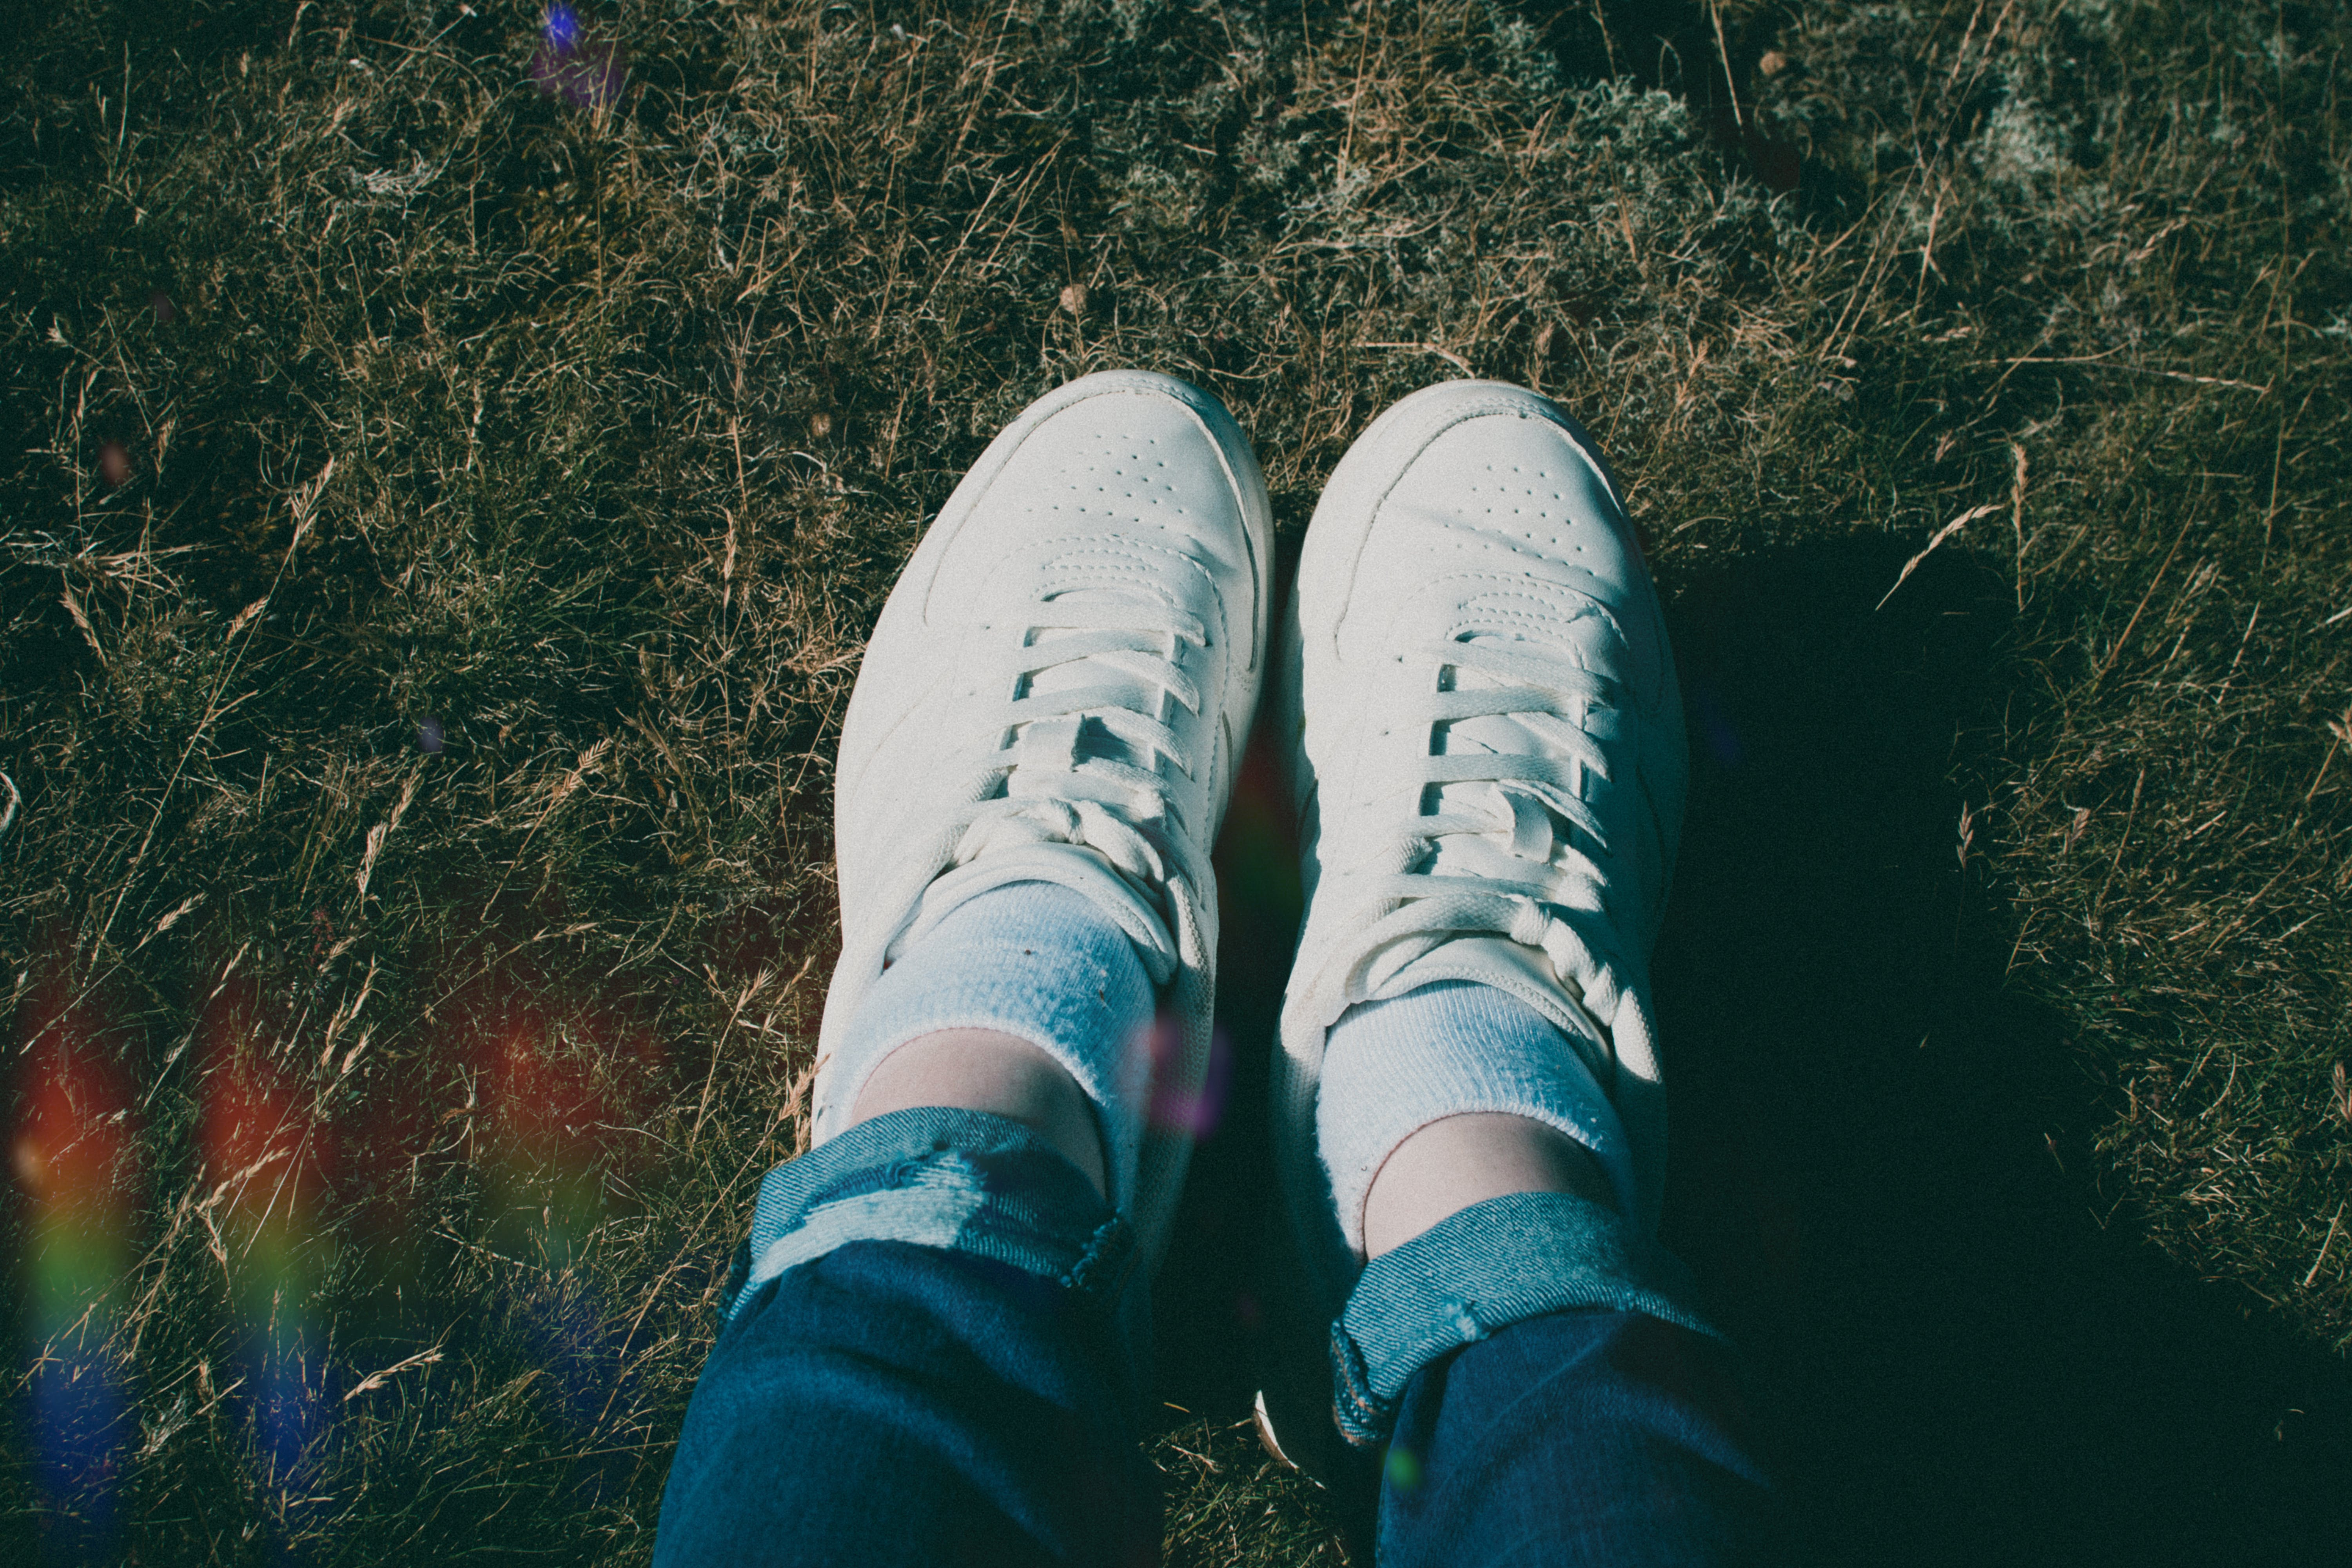 Close-Up Photo of Person Wearing White Shoes